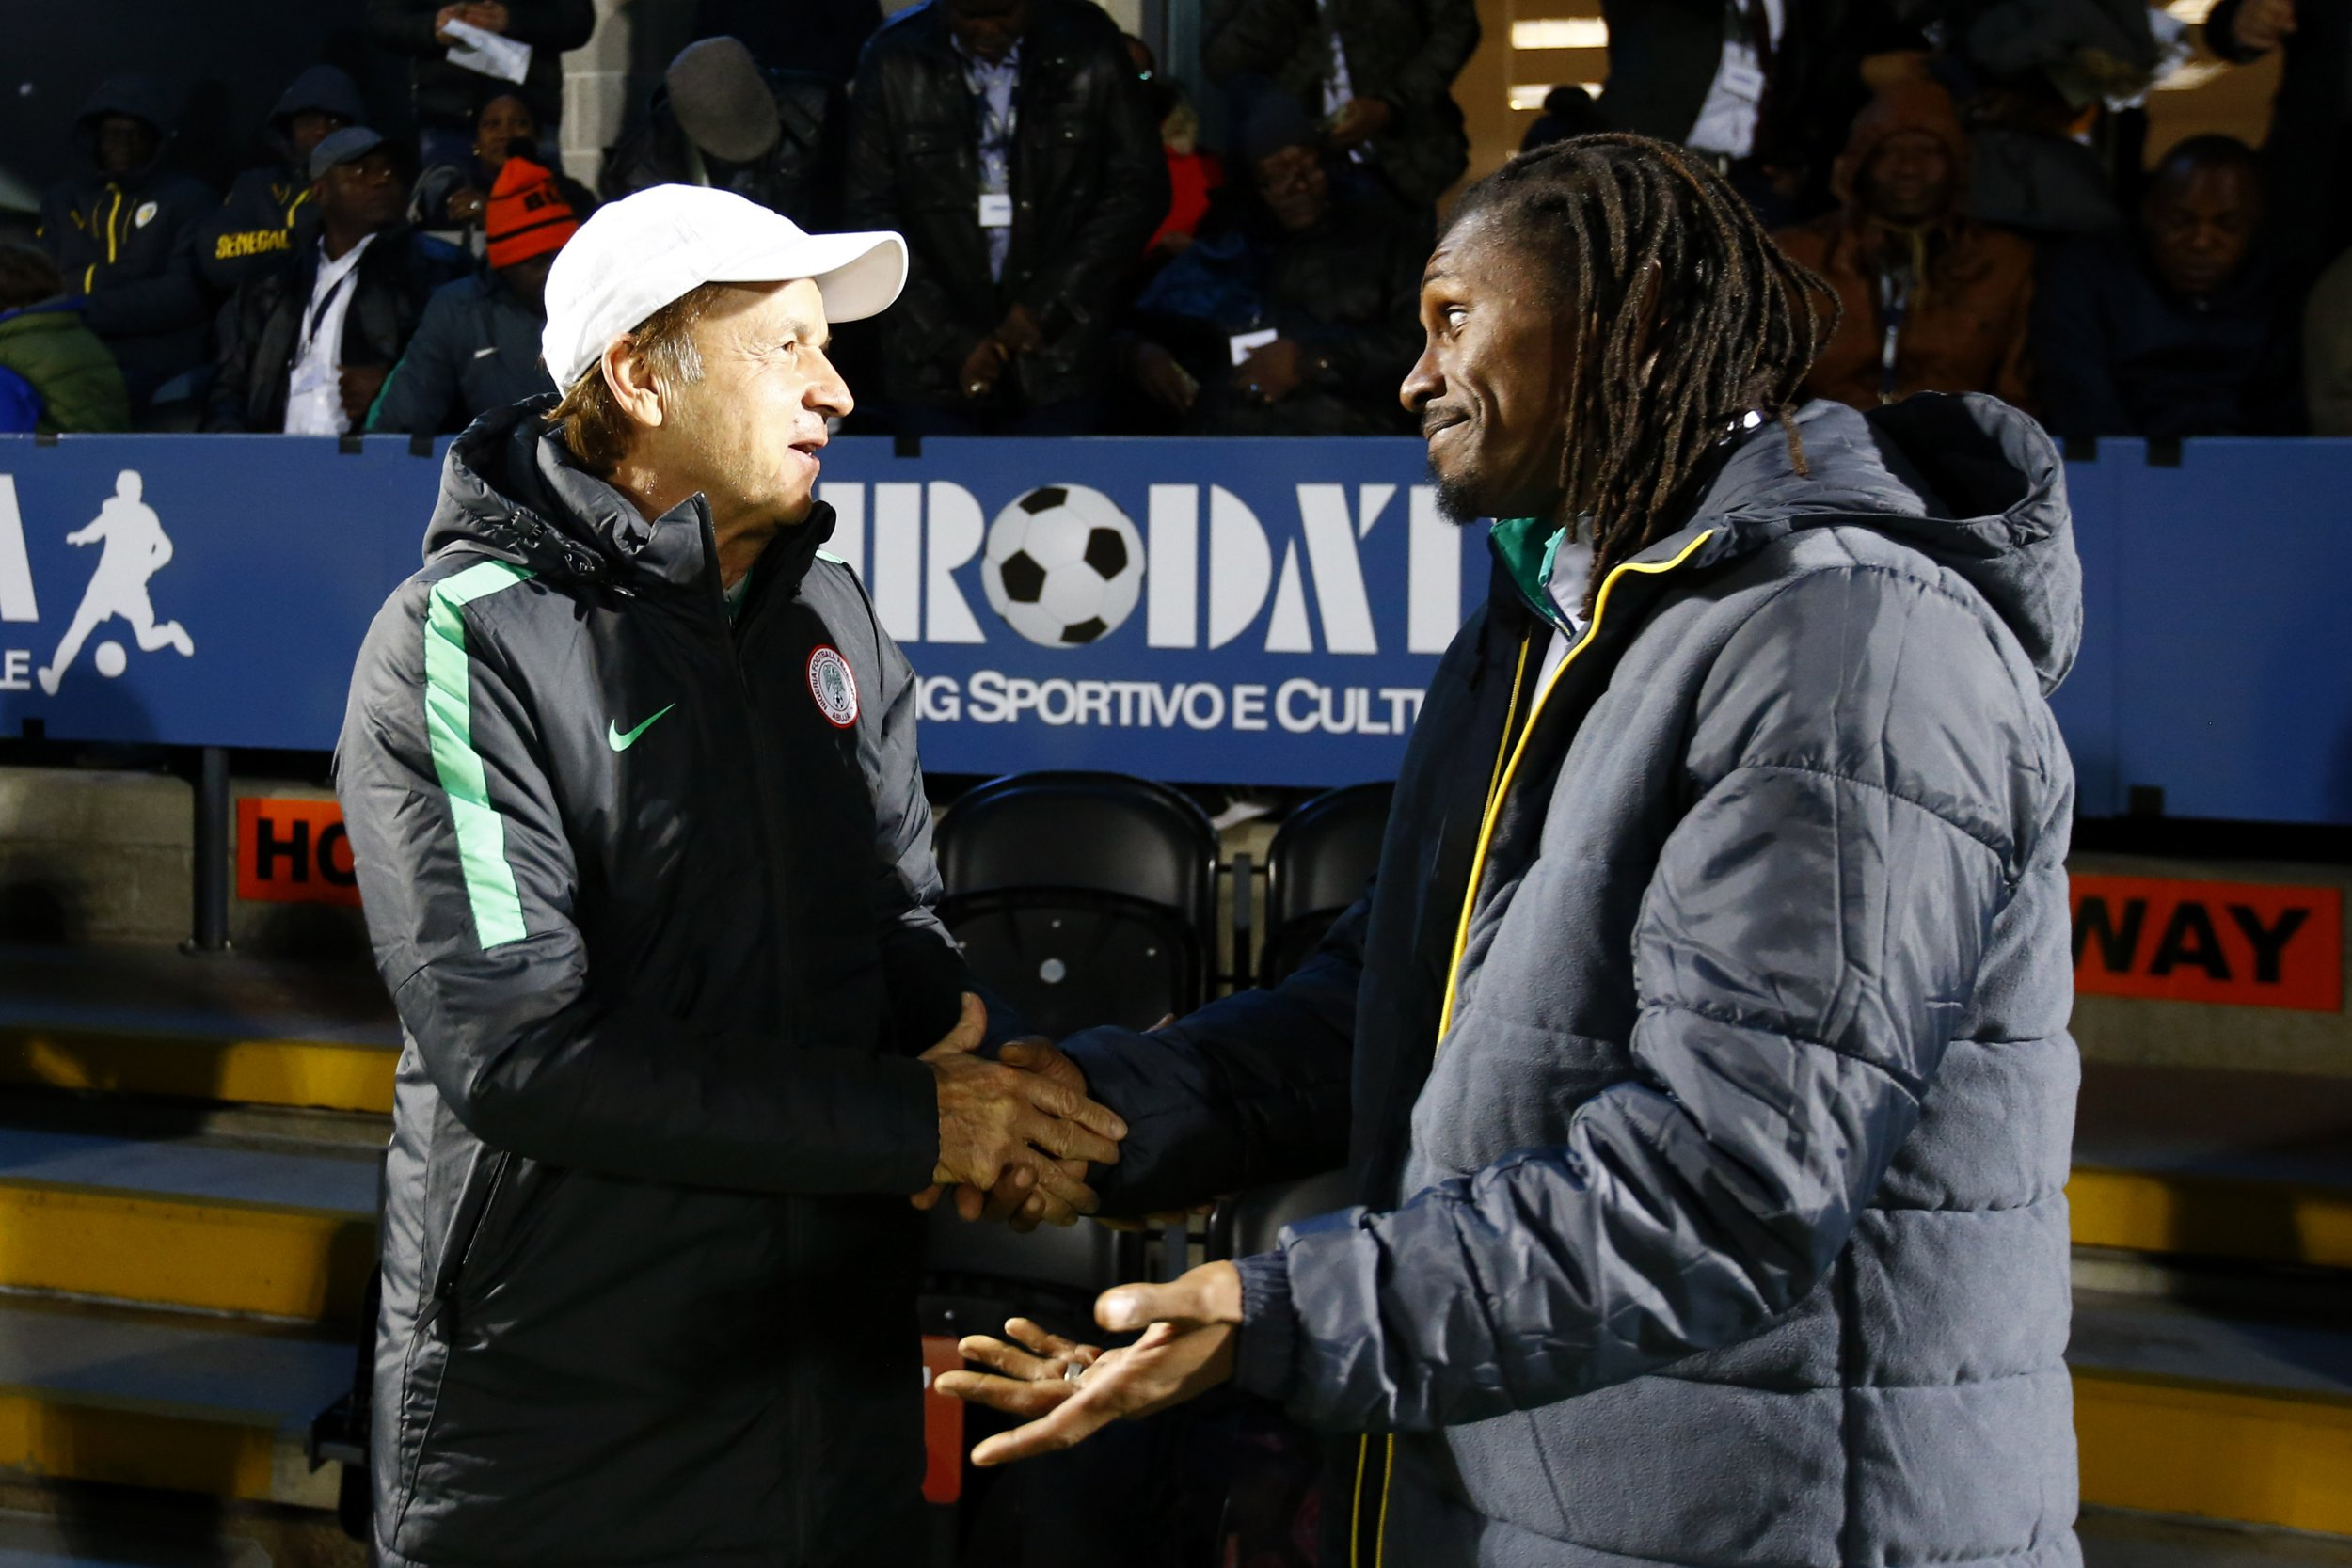 Nigeria coach Gernot Rohr, left, with Senegal coach Aliou Cisse at The Hive, Barnet, London, March 23.